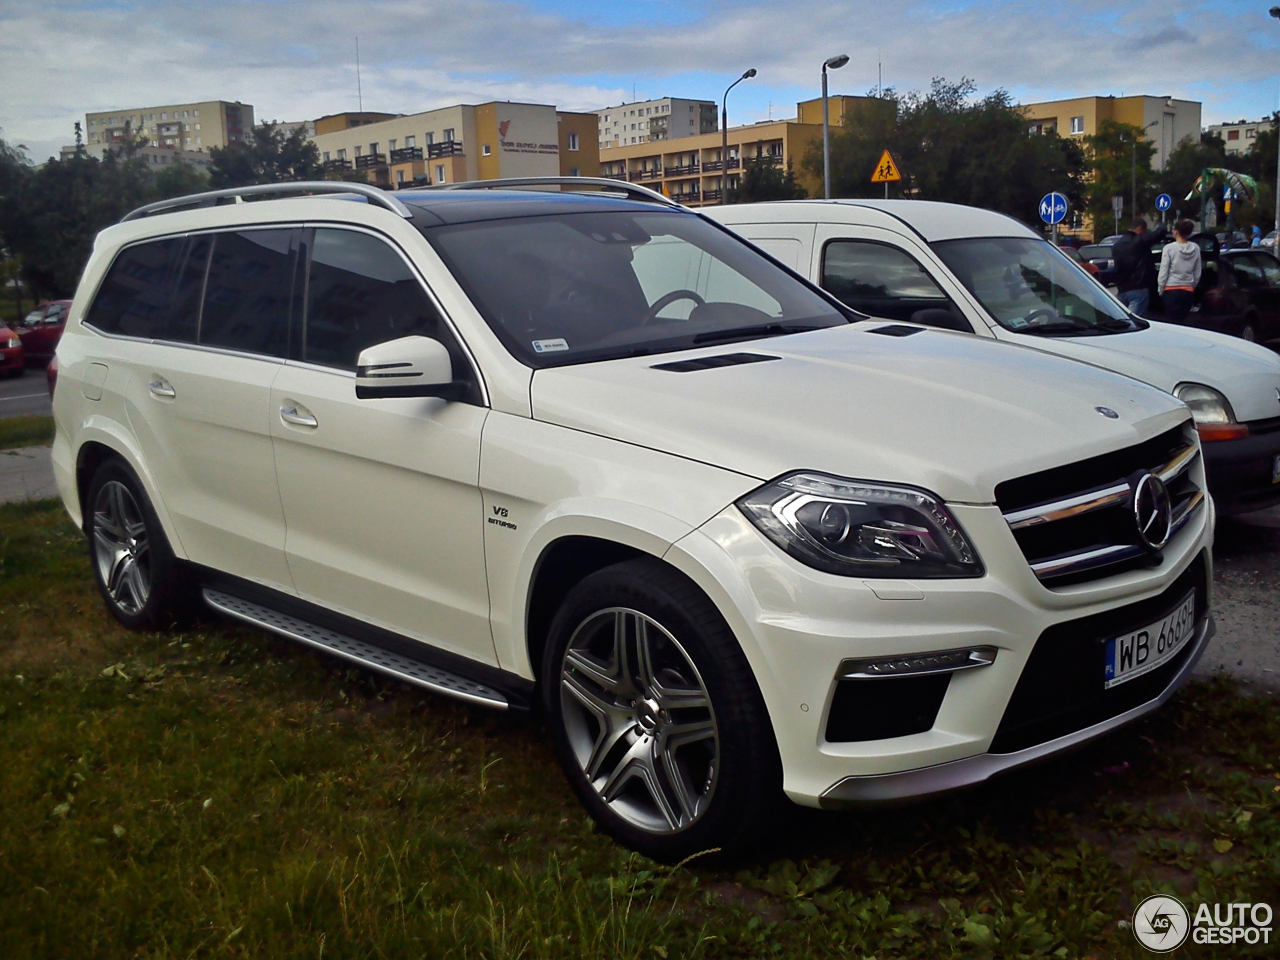 Mercedes benz gl 63 amg x166 27 april 2015 autogespot for 2015 mercedes benz gl